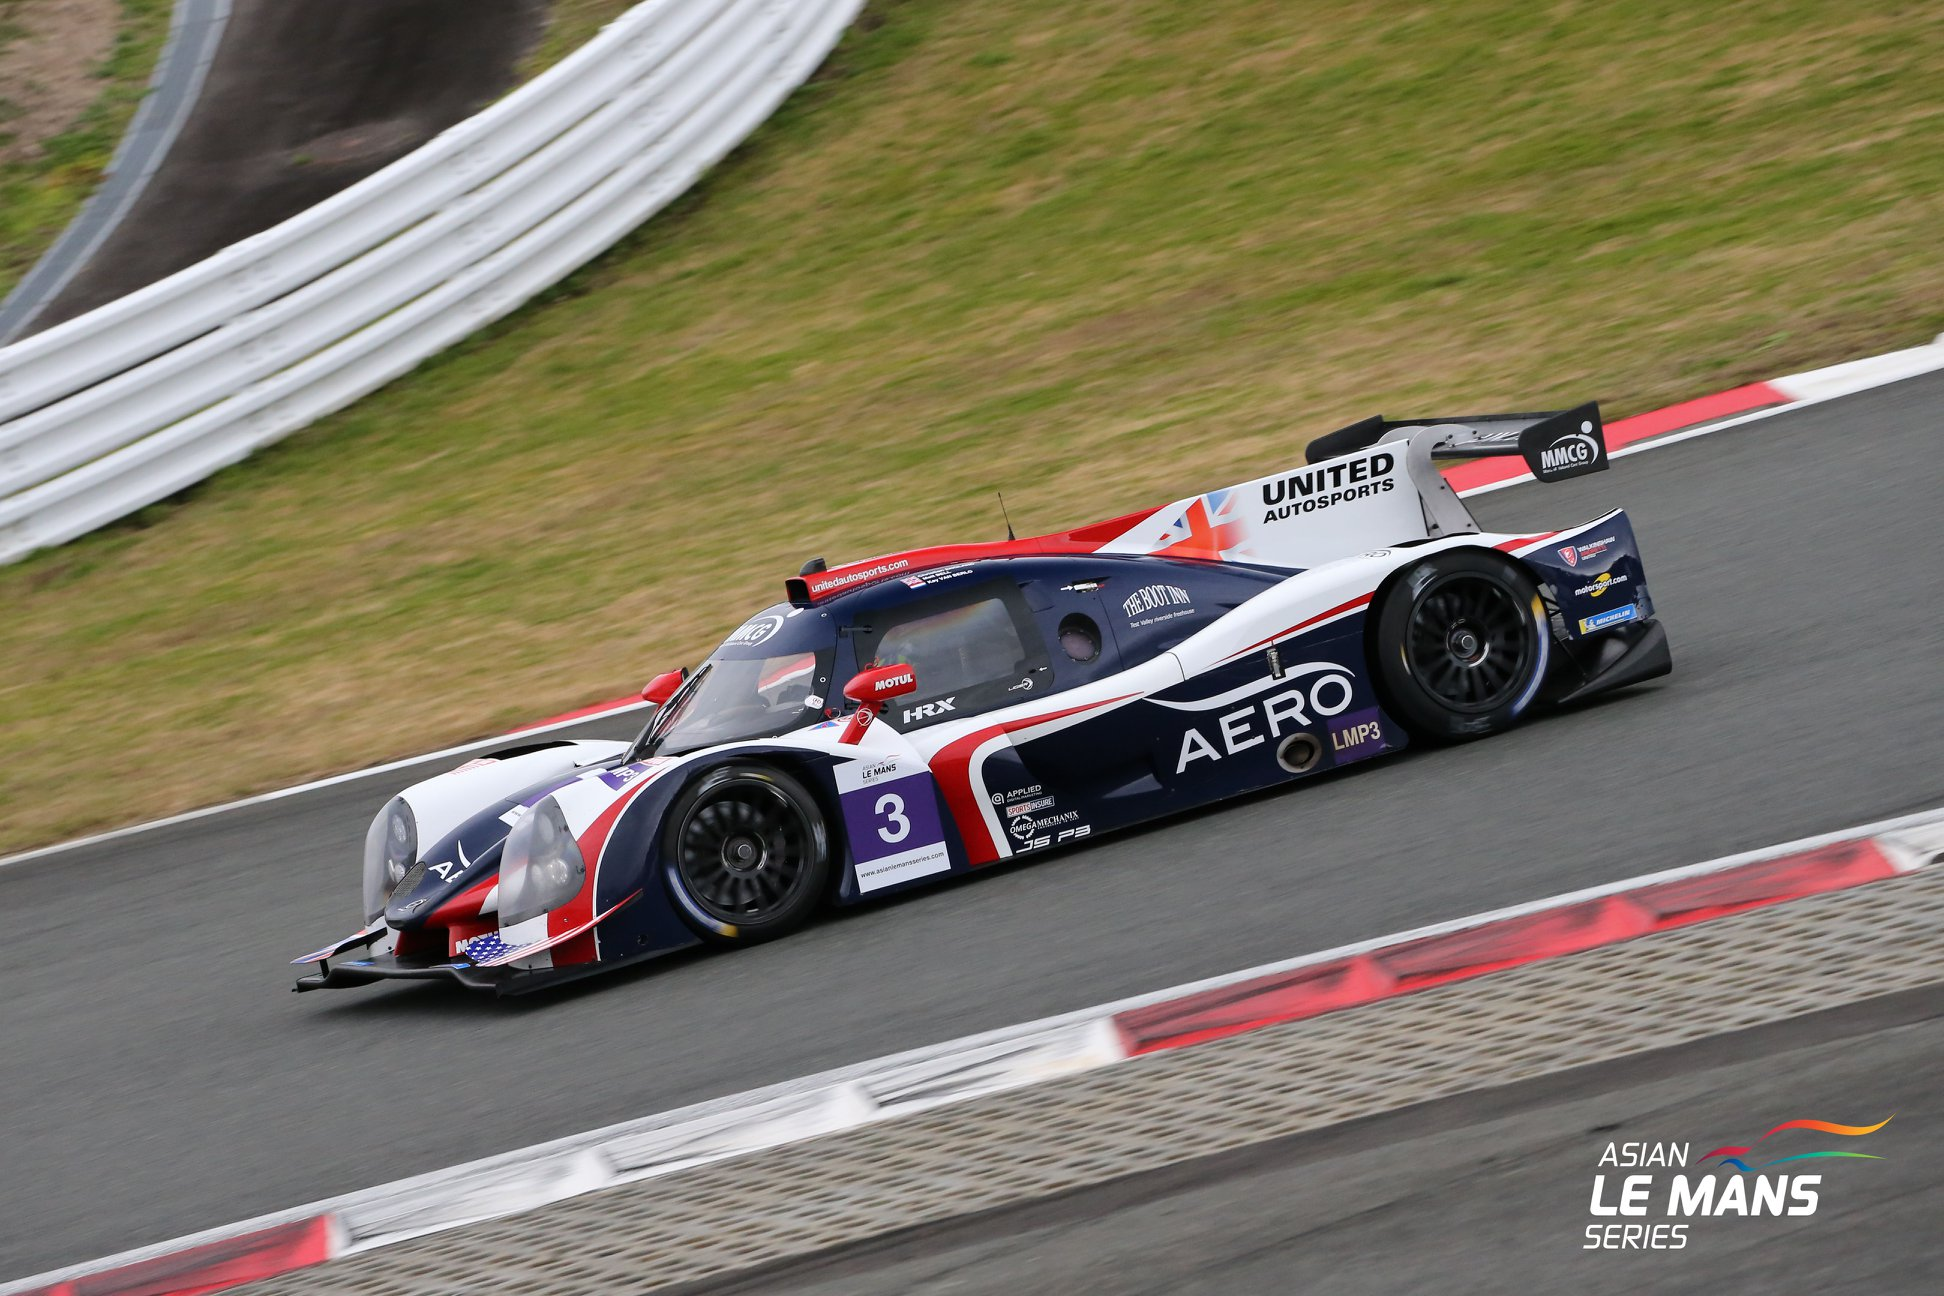 United Autosport vence na classe LMP3 do Asian LMS